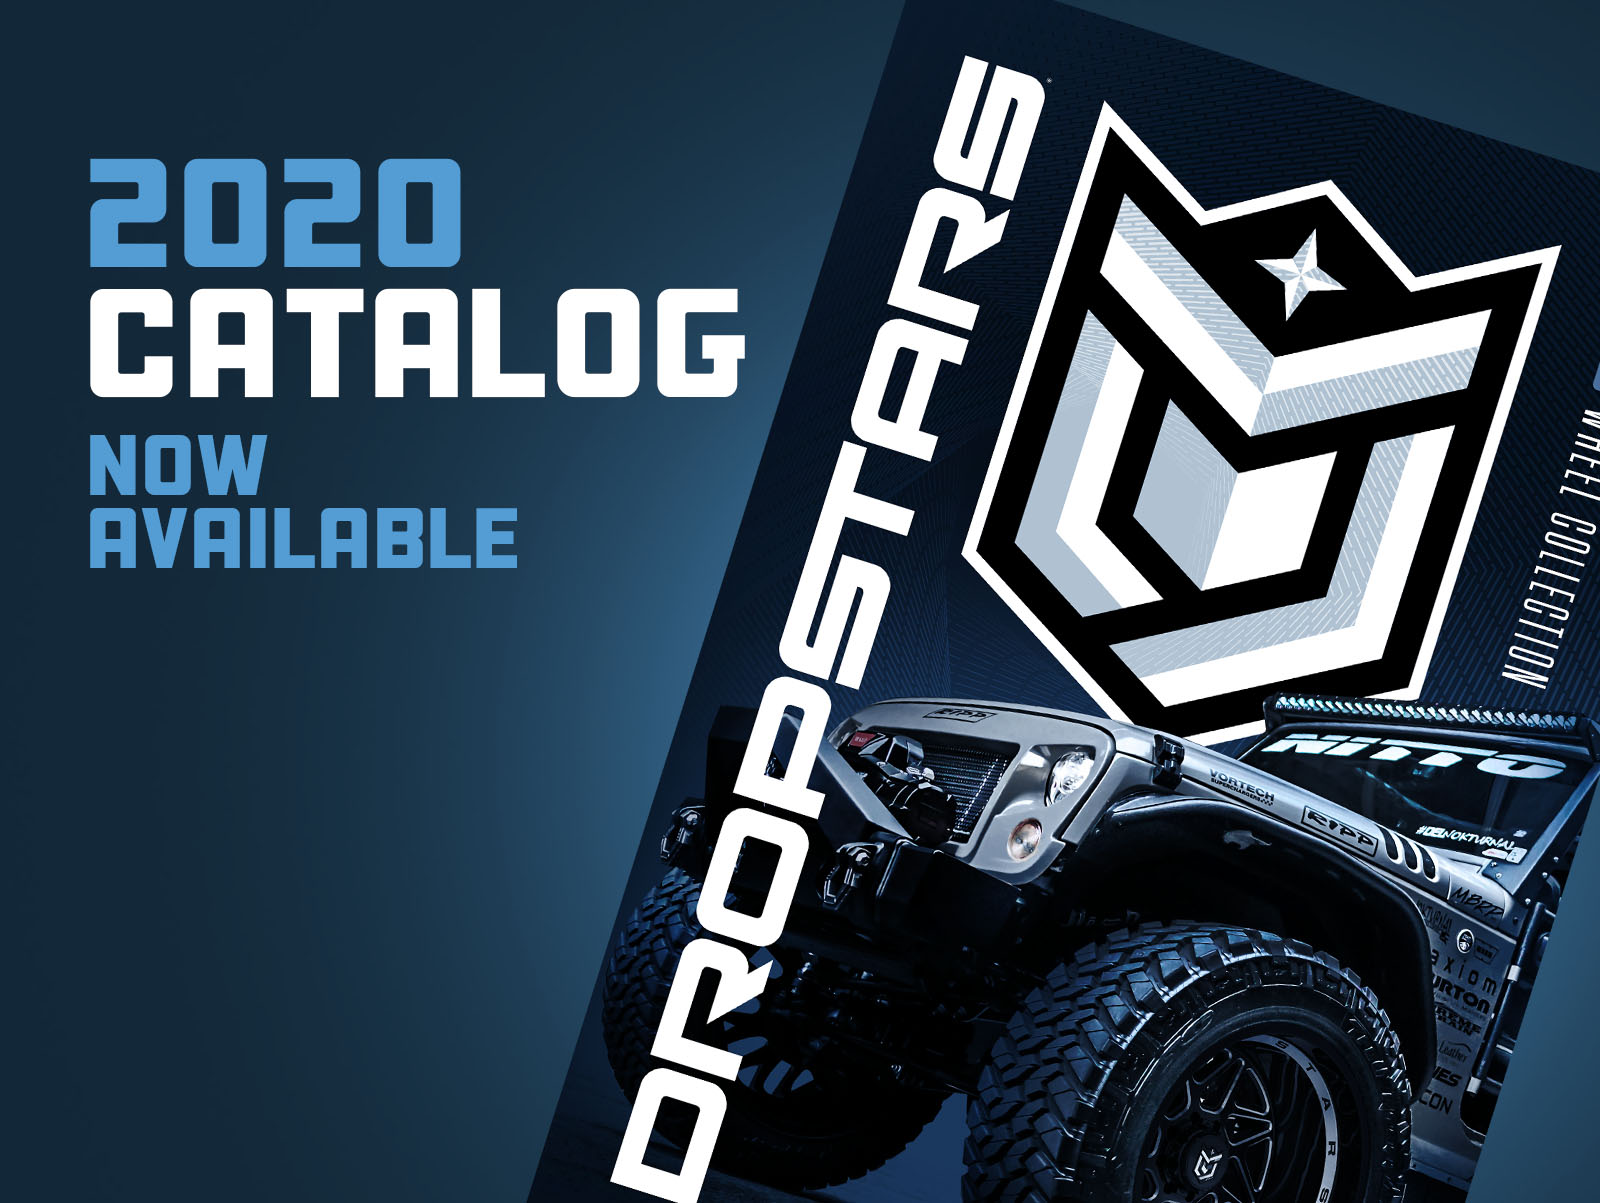 2020 DROPSTARS CATALOG